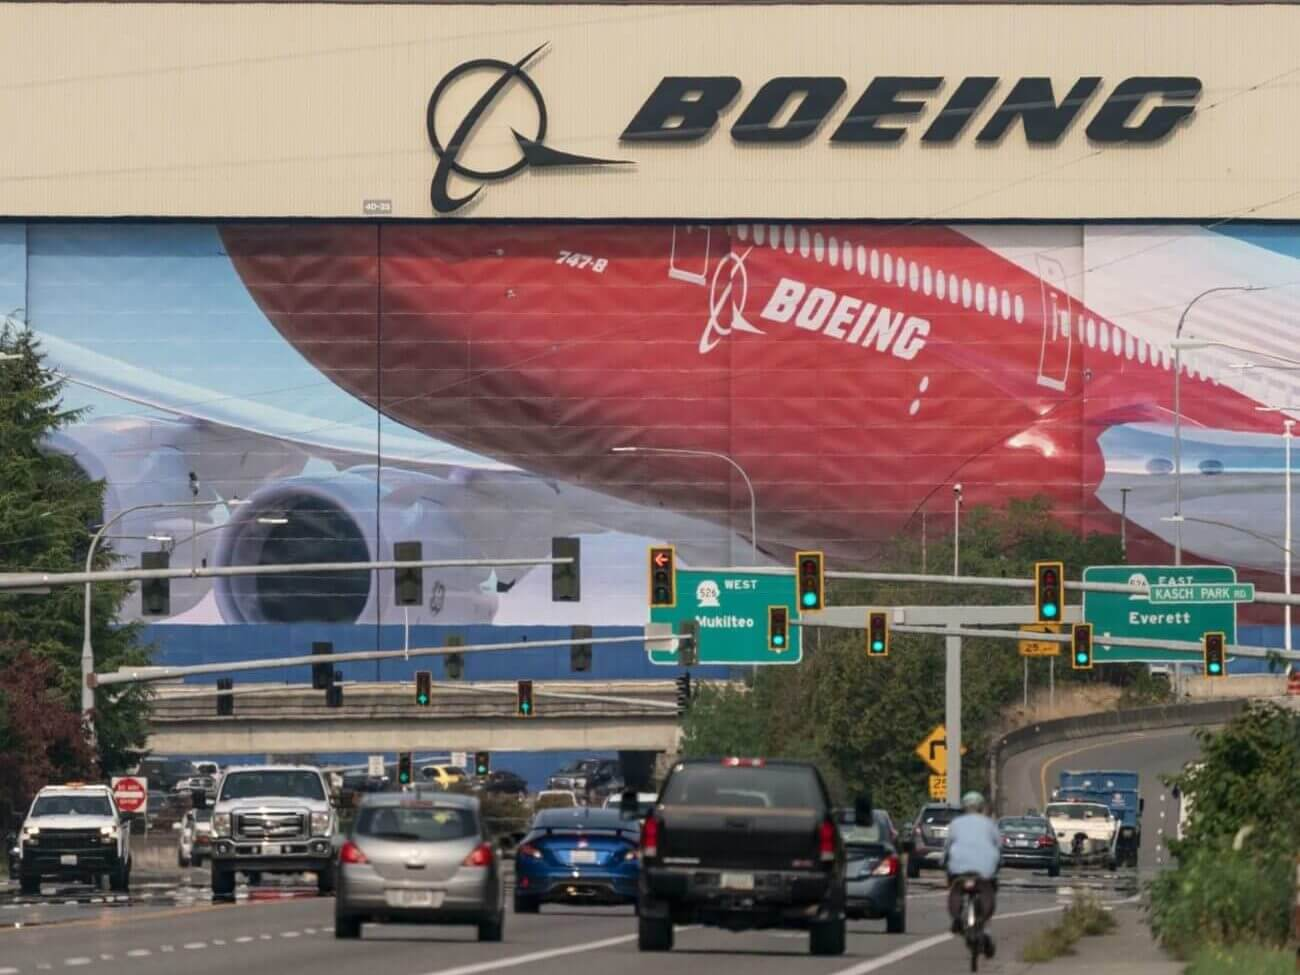 Boeing Is the Most up-to-date Company to Spoil out a Hostile Exchange Ambiance